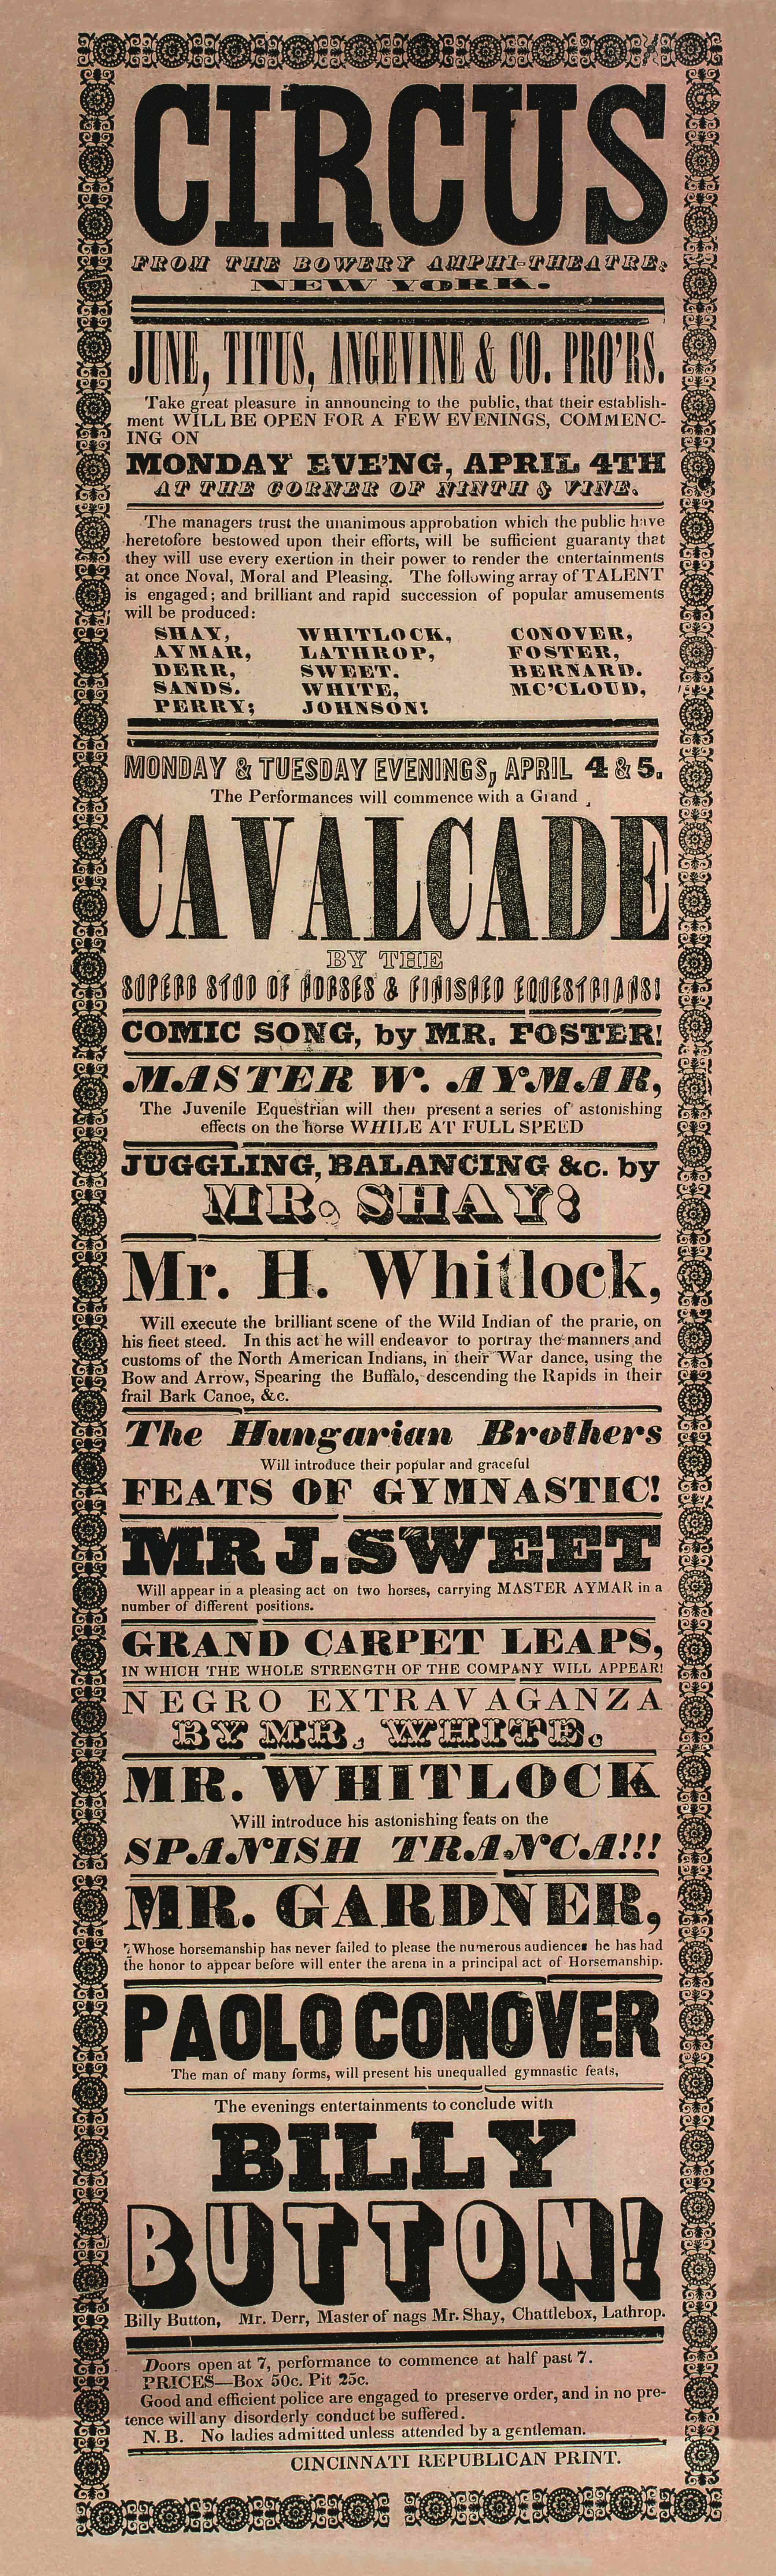 Broadside for June, Titus & Angevine & Co. Circus, 1840